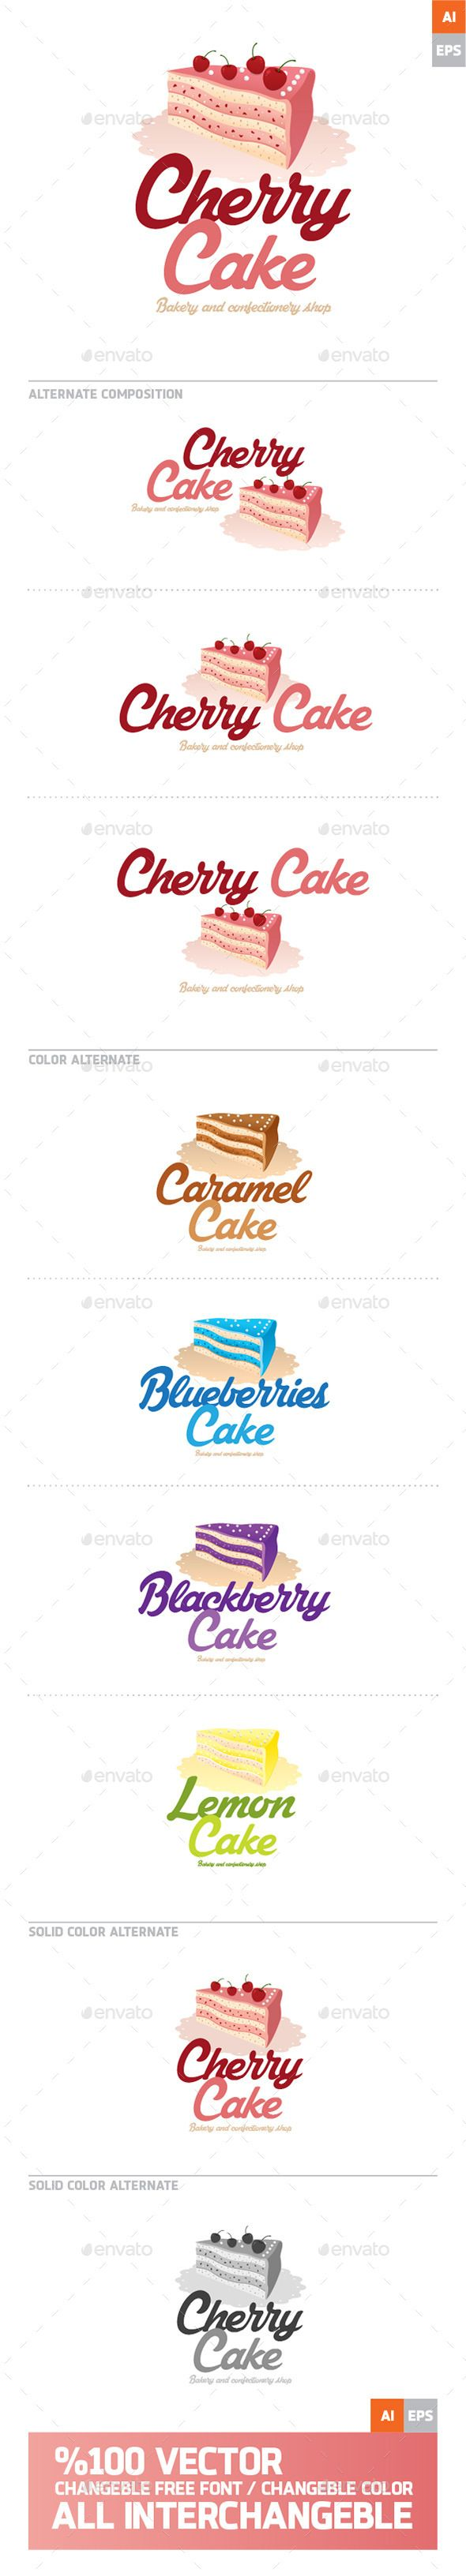 Cherry Cake Logo - Download…